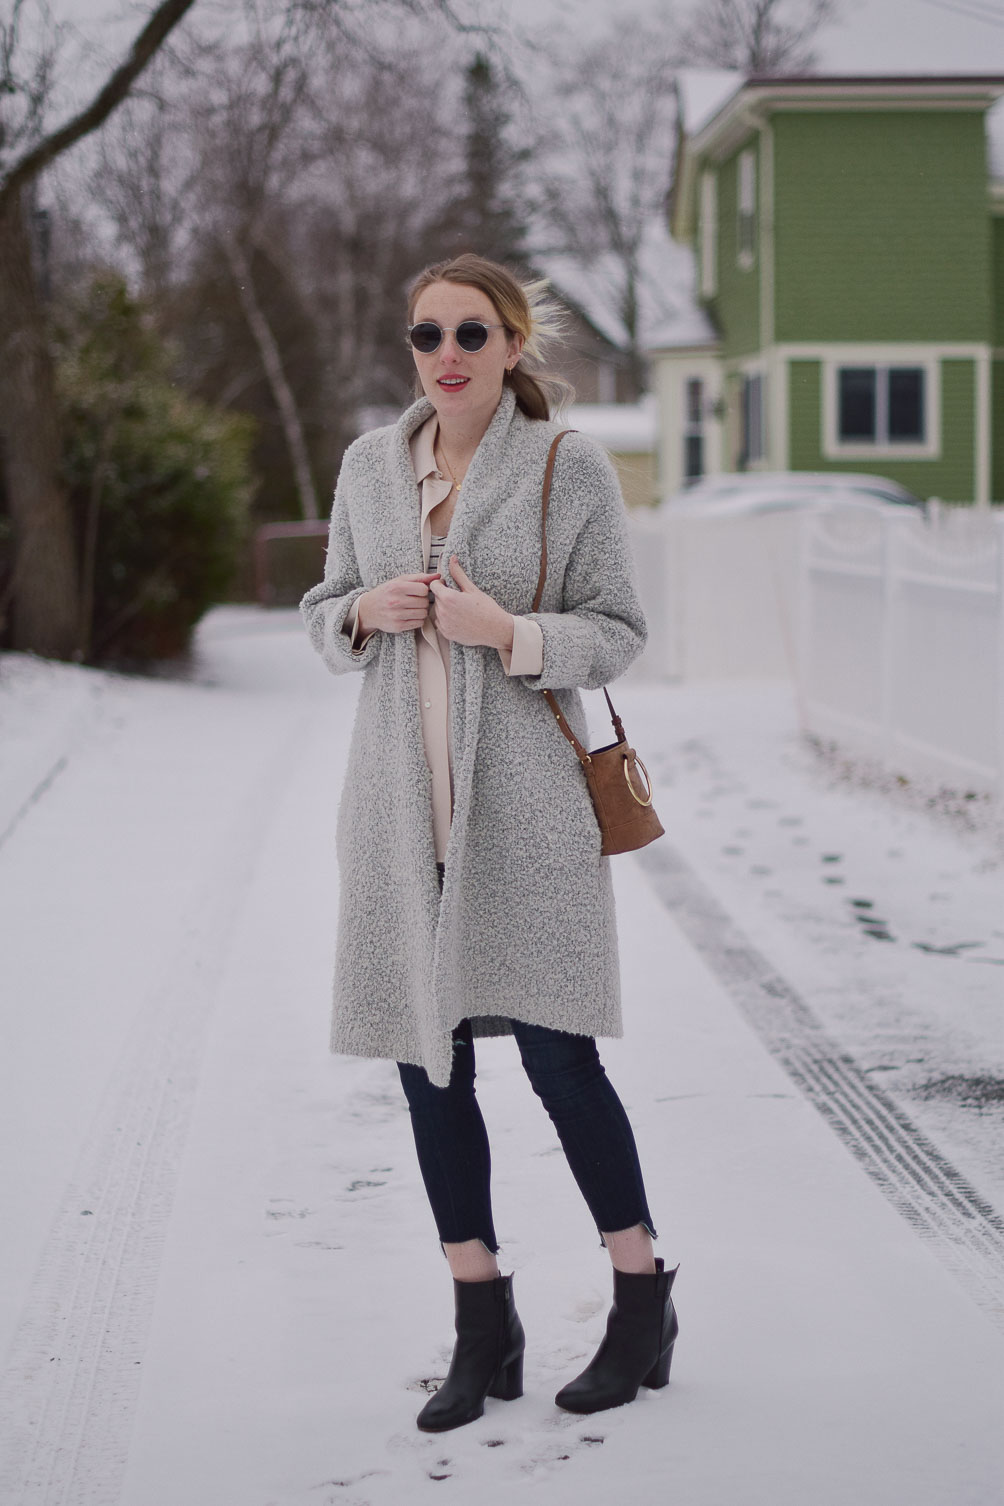 styling a faux suede mini bag with raw edge maternity jeans and an oversized cardigan